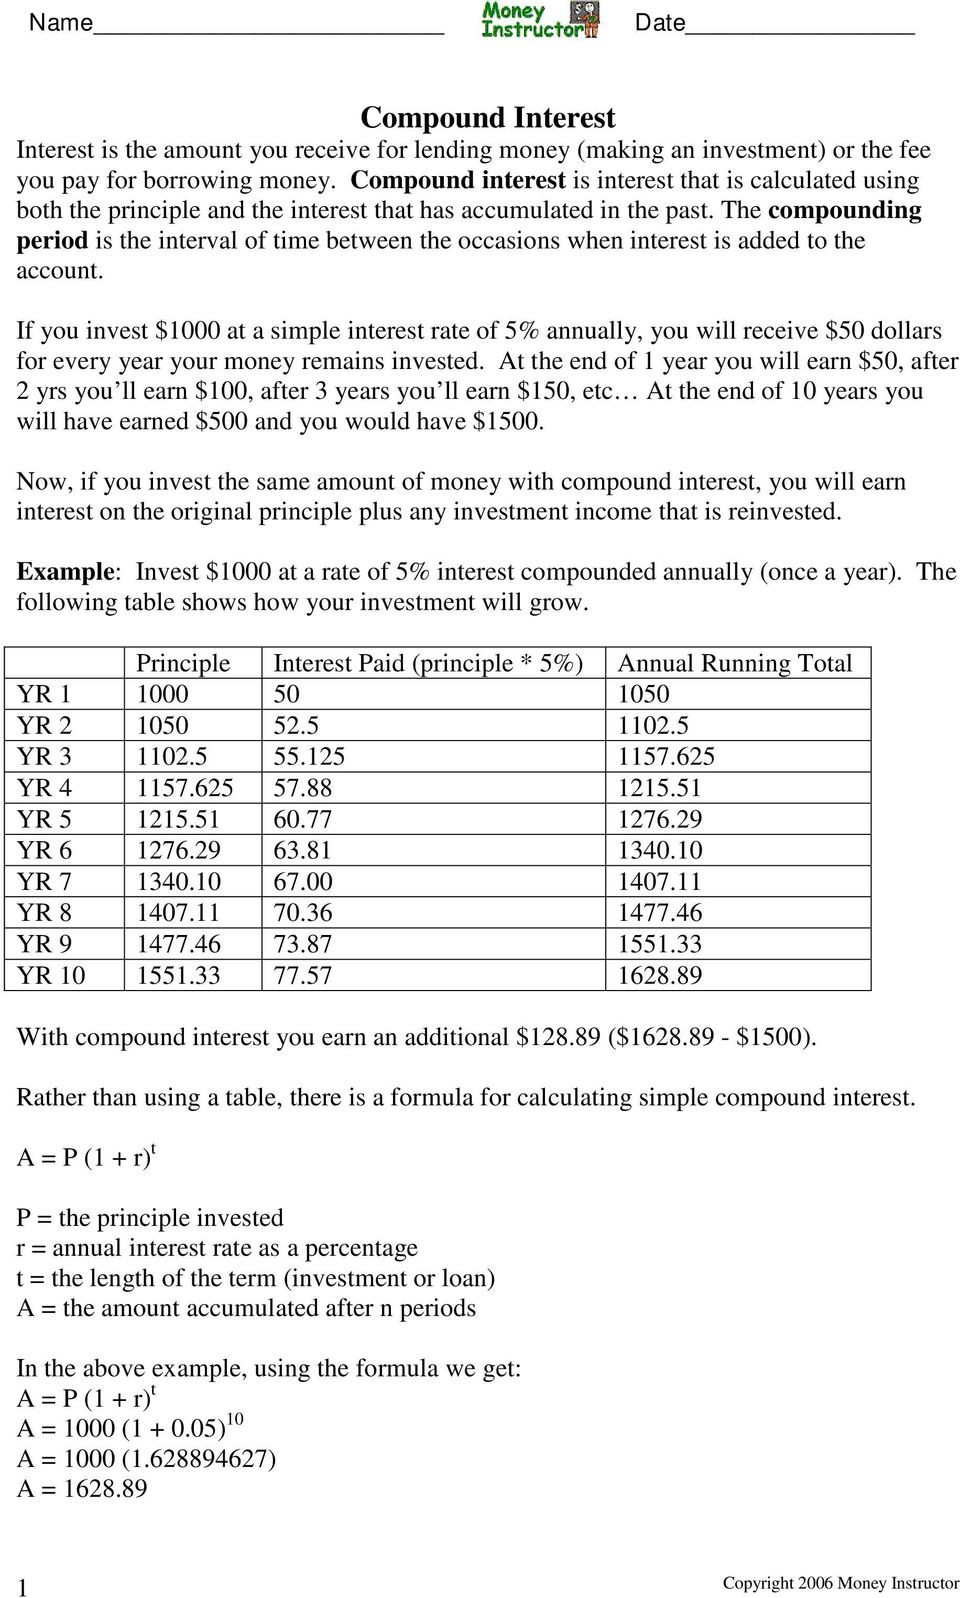 Simple and Compound Interest Worksheet Simple and Pound Interest Worksheet Answers Nidecmege